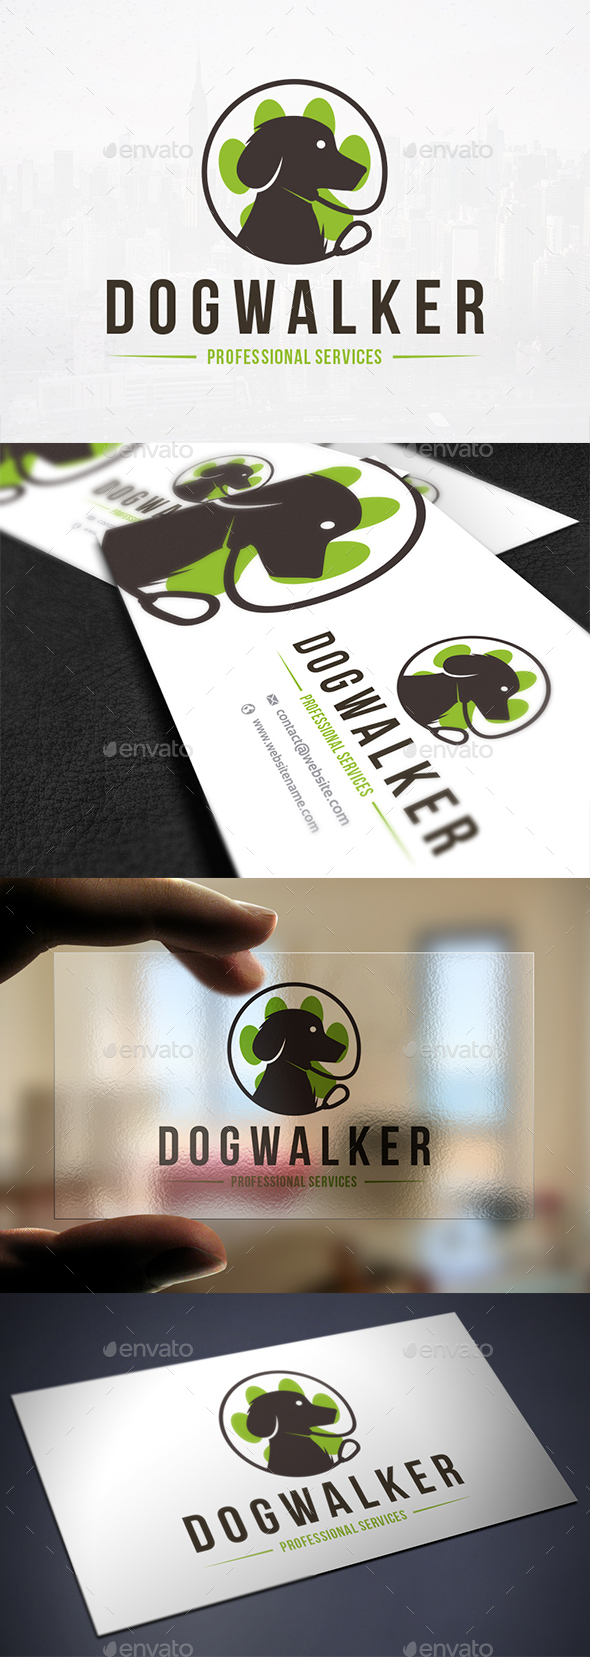 Dog Walker Logo Template - Animals Logo Templates